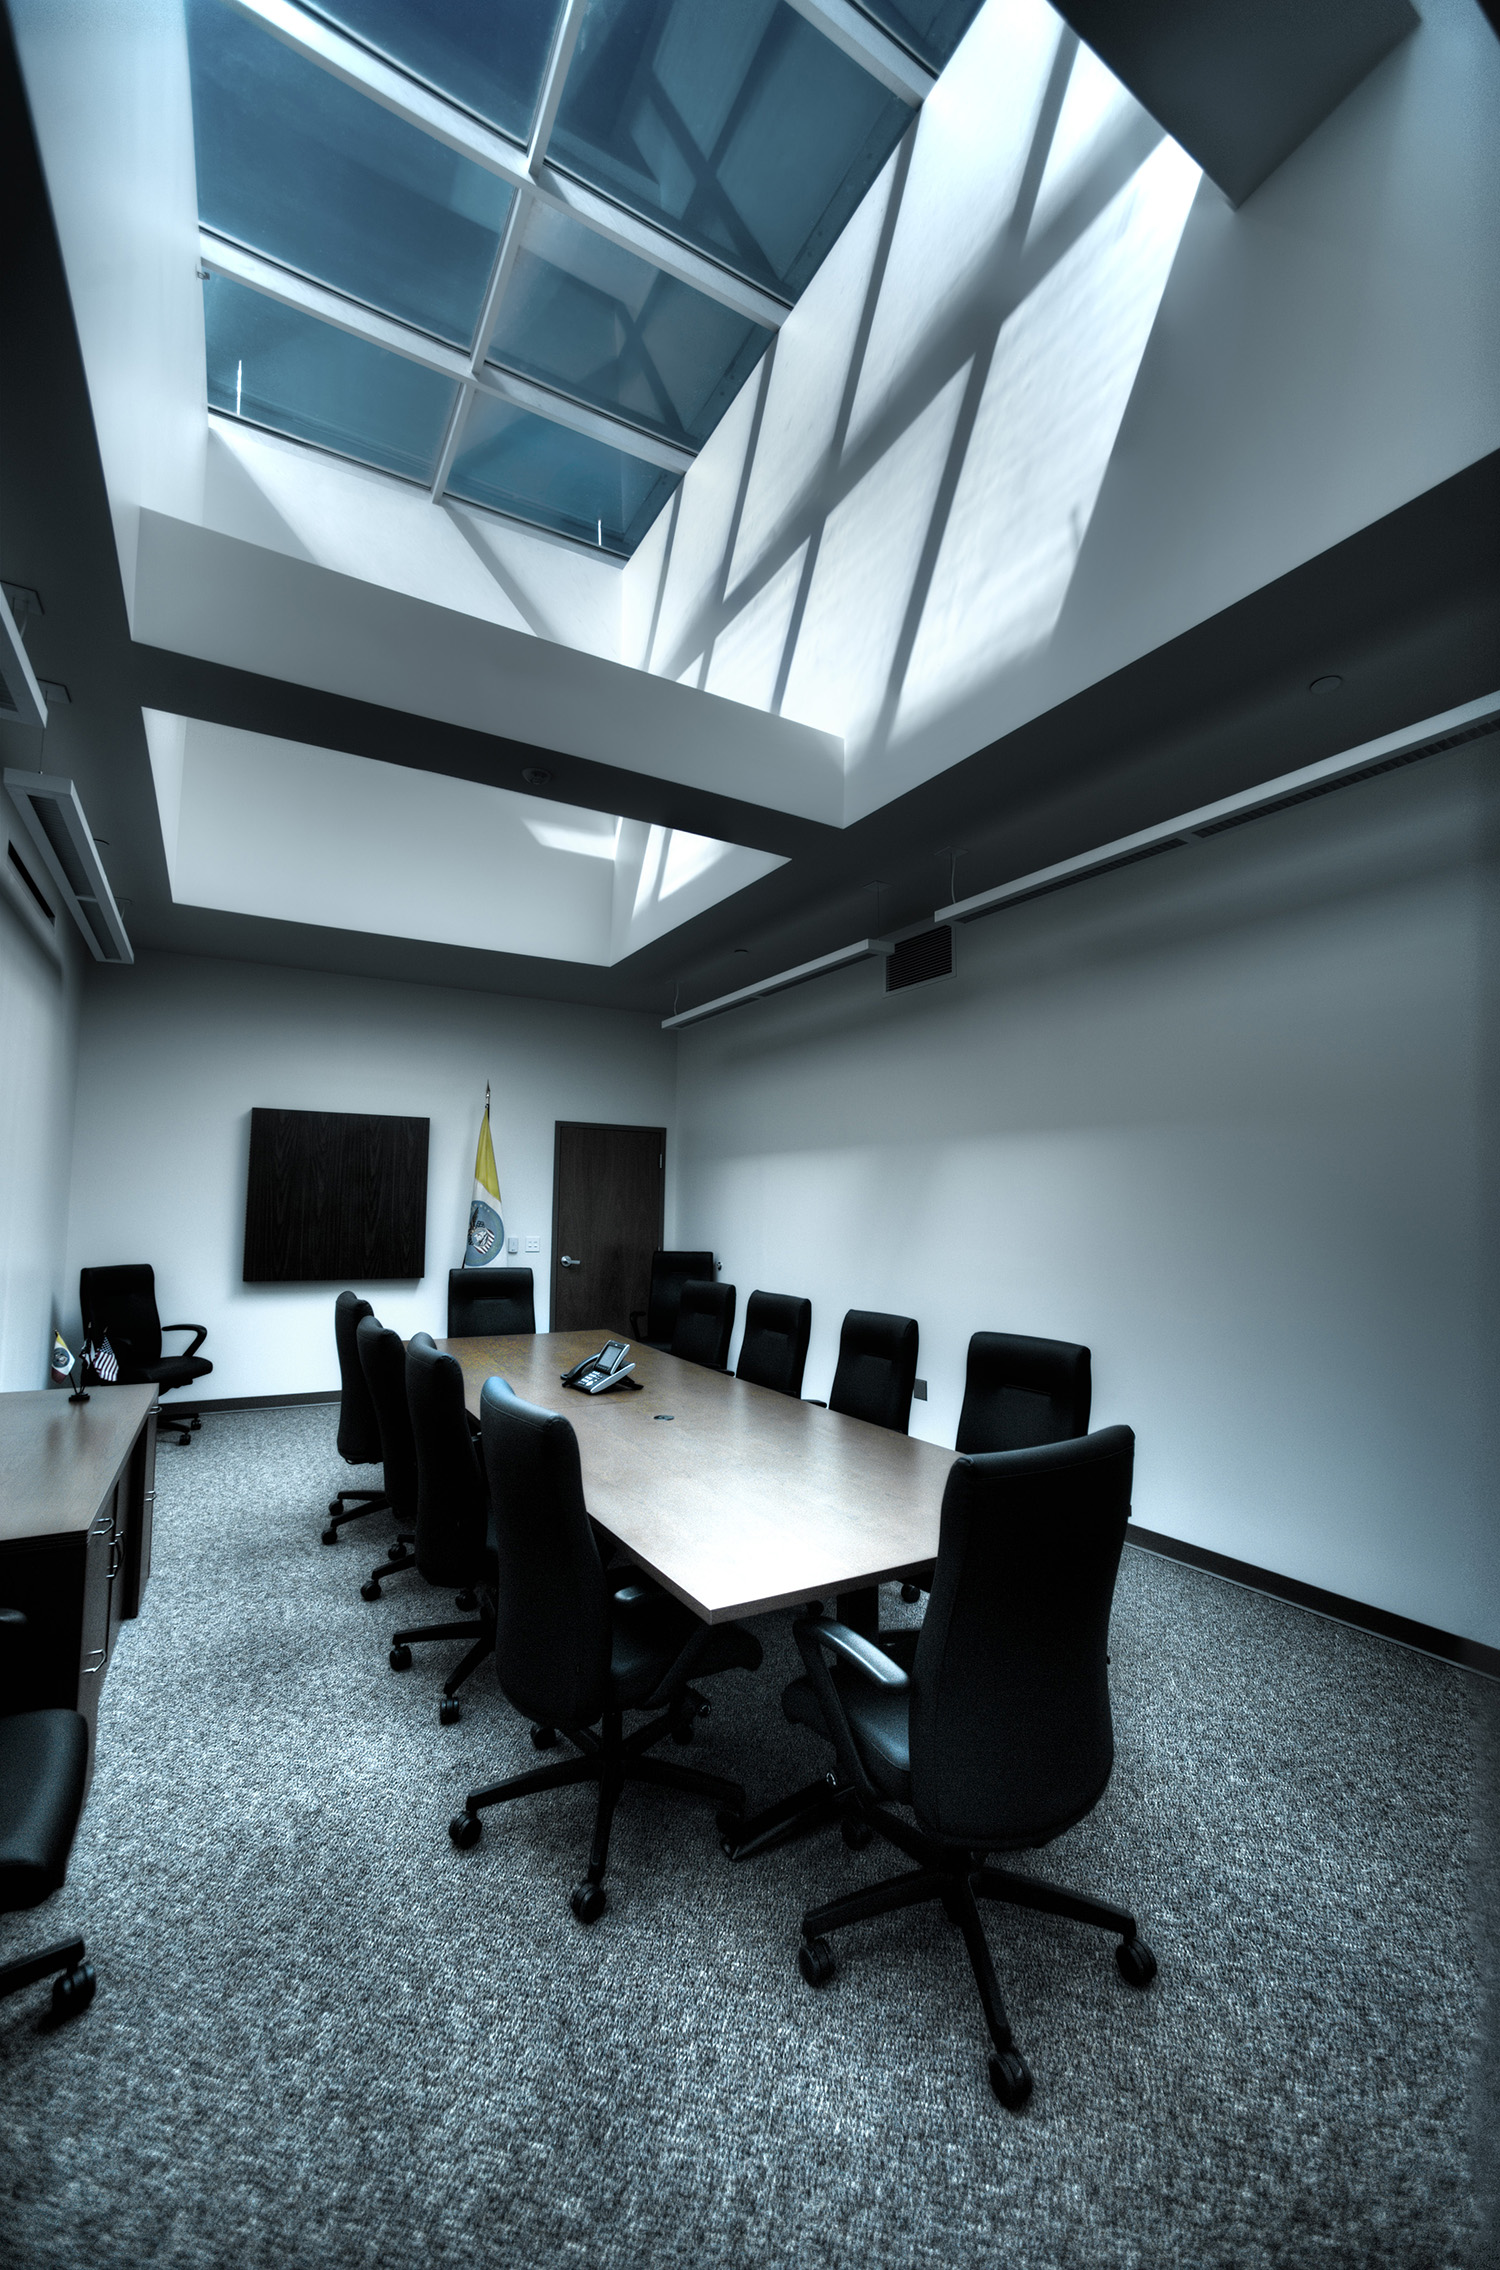 Departmental Conference Room